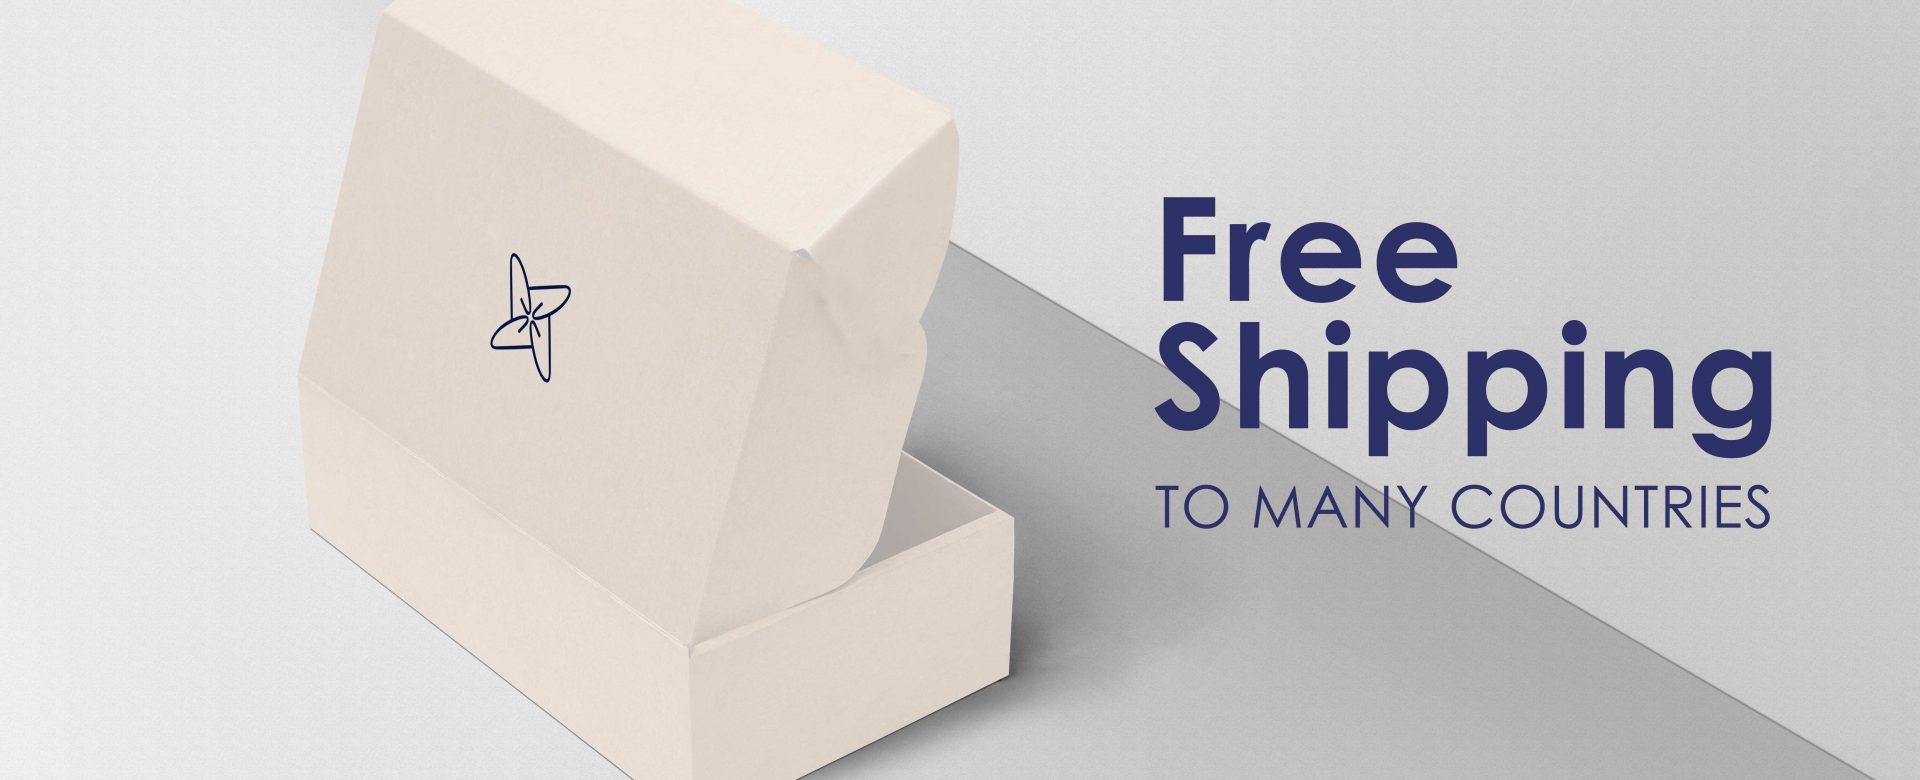 Free Shipping to many countries